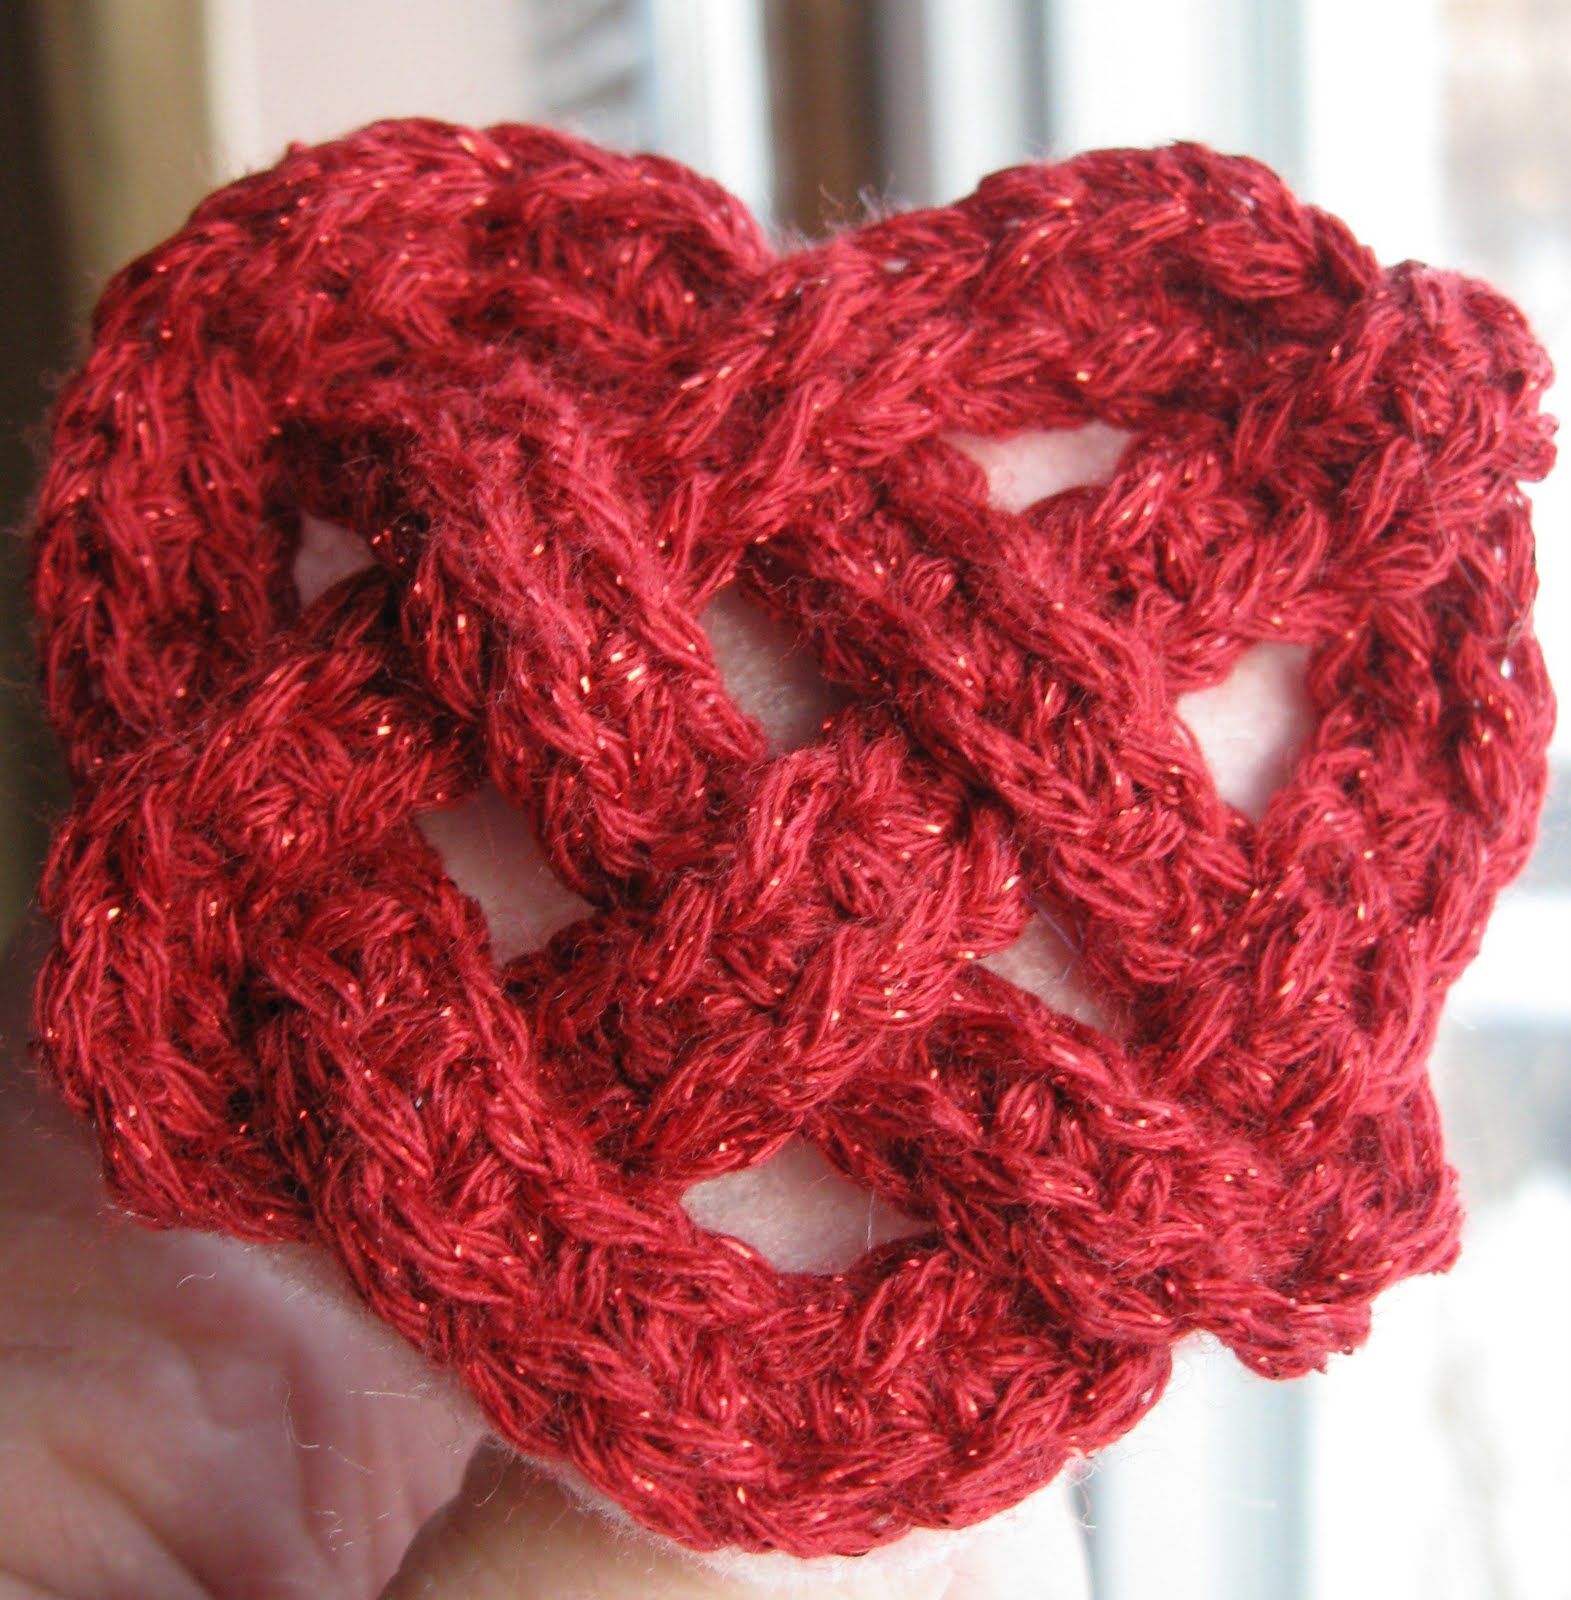 Crochet Knot : Celtic Knot Crochet: Hearts and Knots